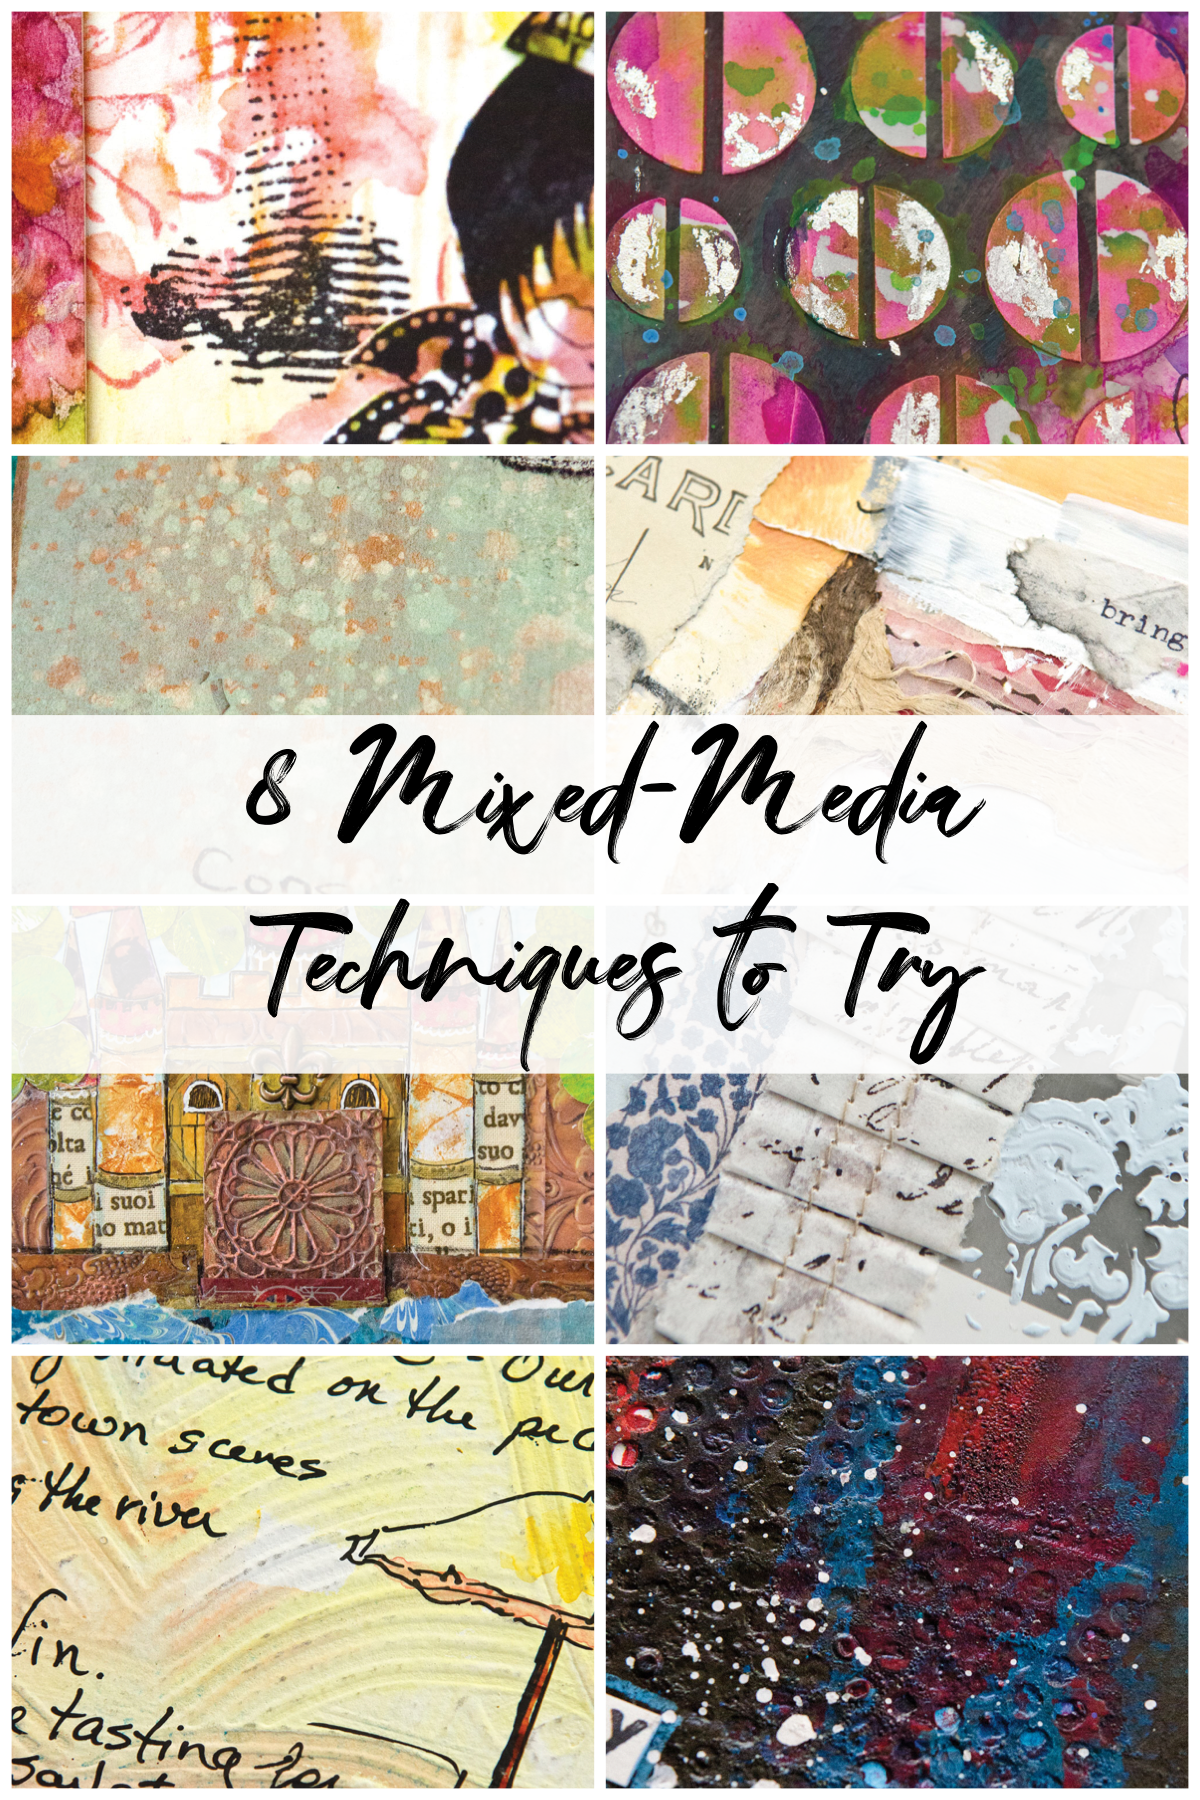 8 Mixed-Media Techniques to Try